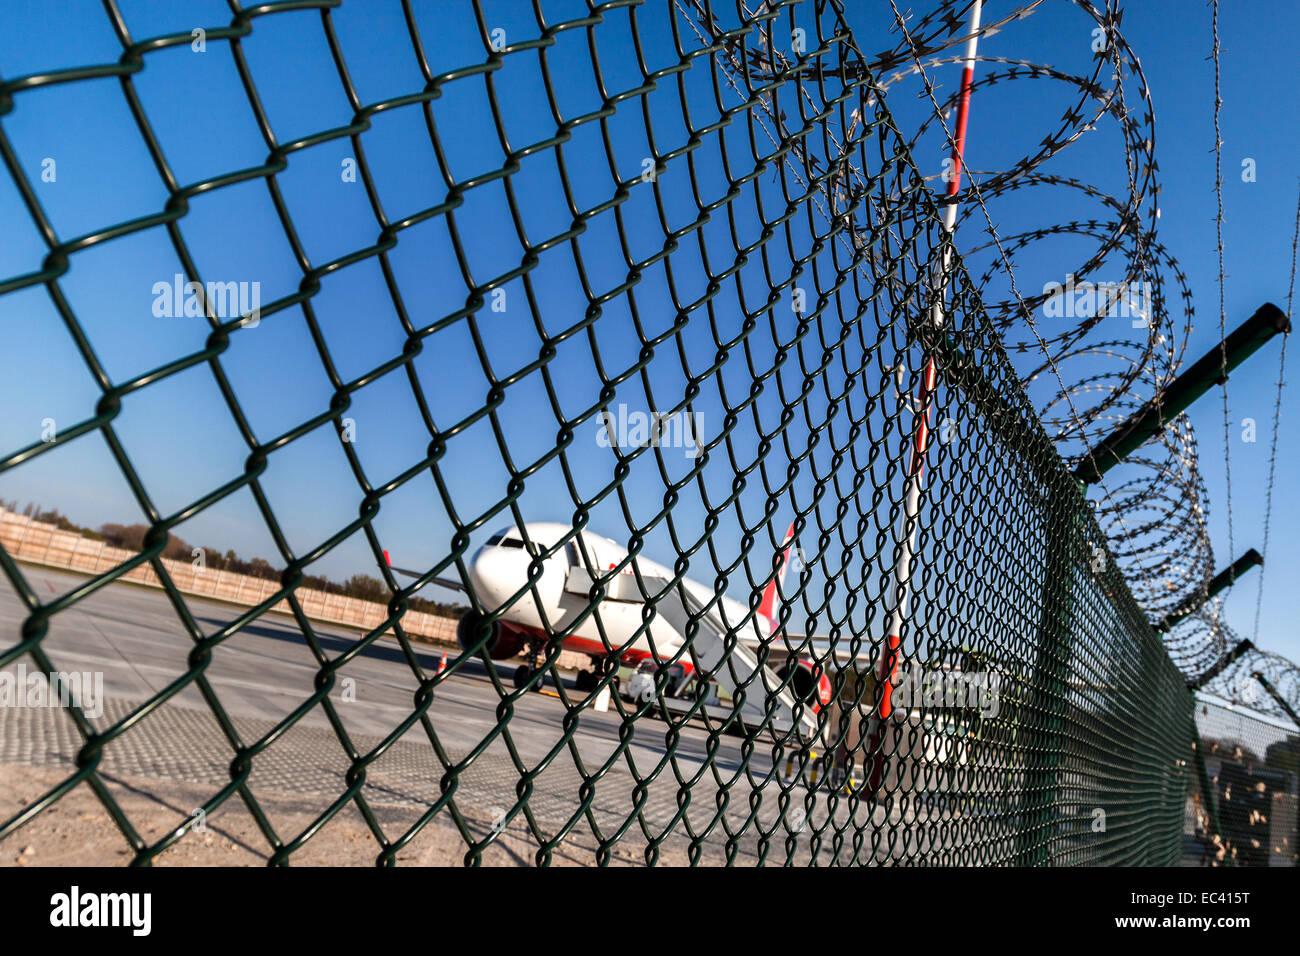 Wire Mesh Chain Wire Stockfotos & Wire Mesh Chain Wire Bilder - Alamy